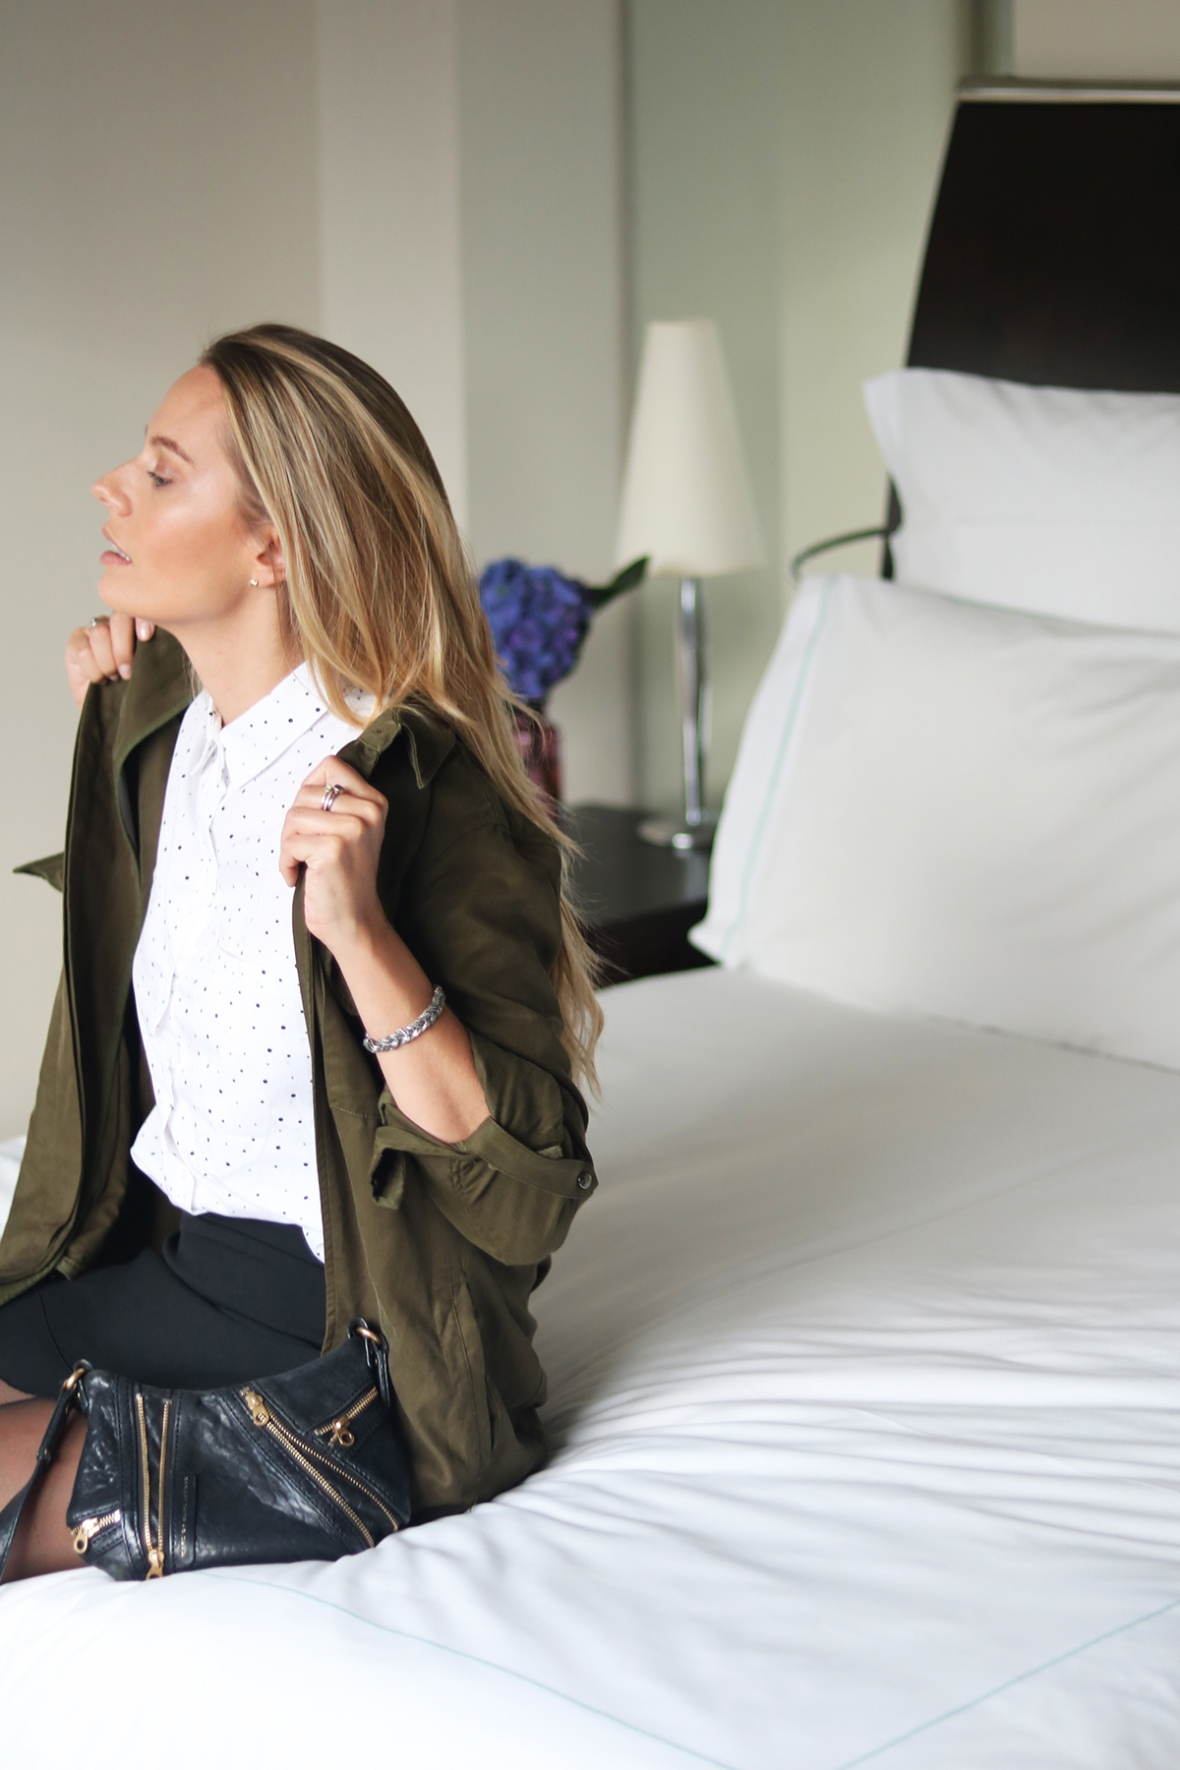 Fashion blogger Review Hotel London One Aldwych Covent Garden13lr